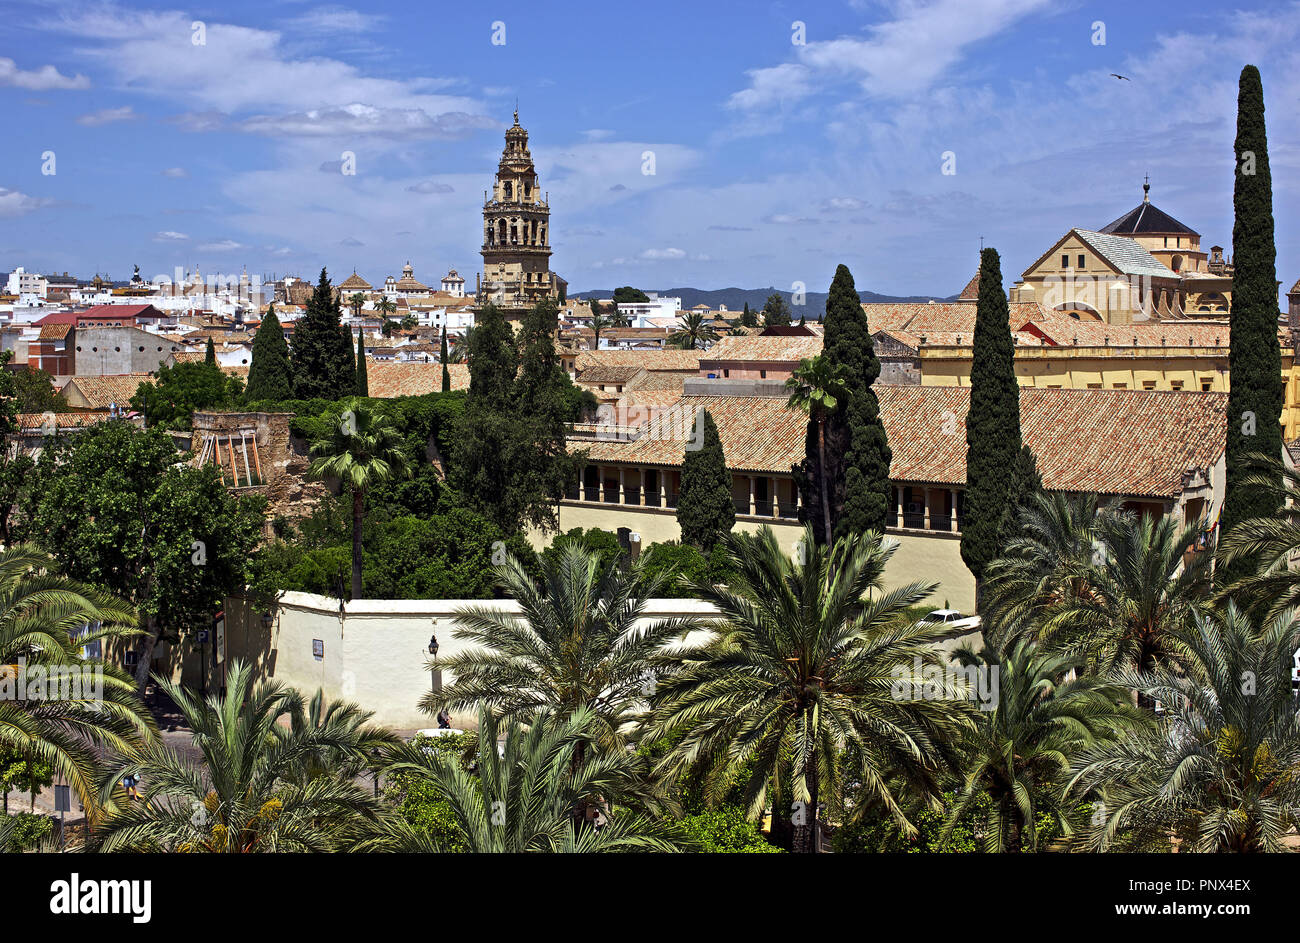 Spain. Cordoba. Panorama of the city with the bell tower of the Mosque-Cathedral. Andalusia. Stock Photo